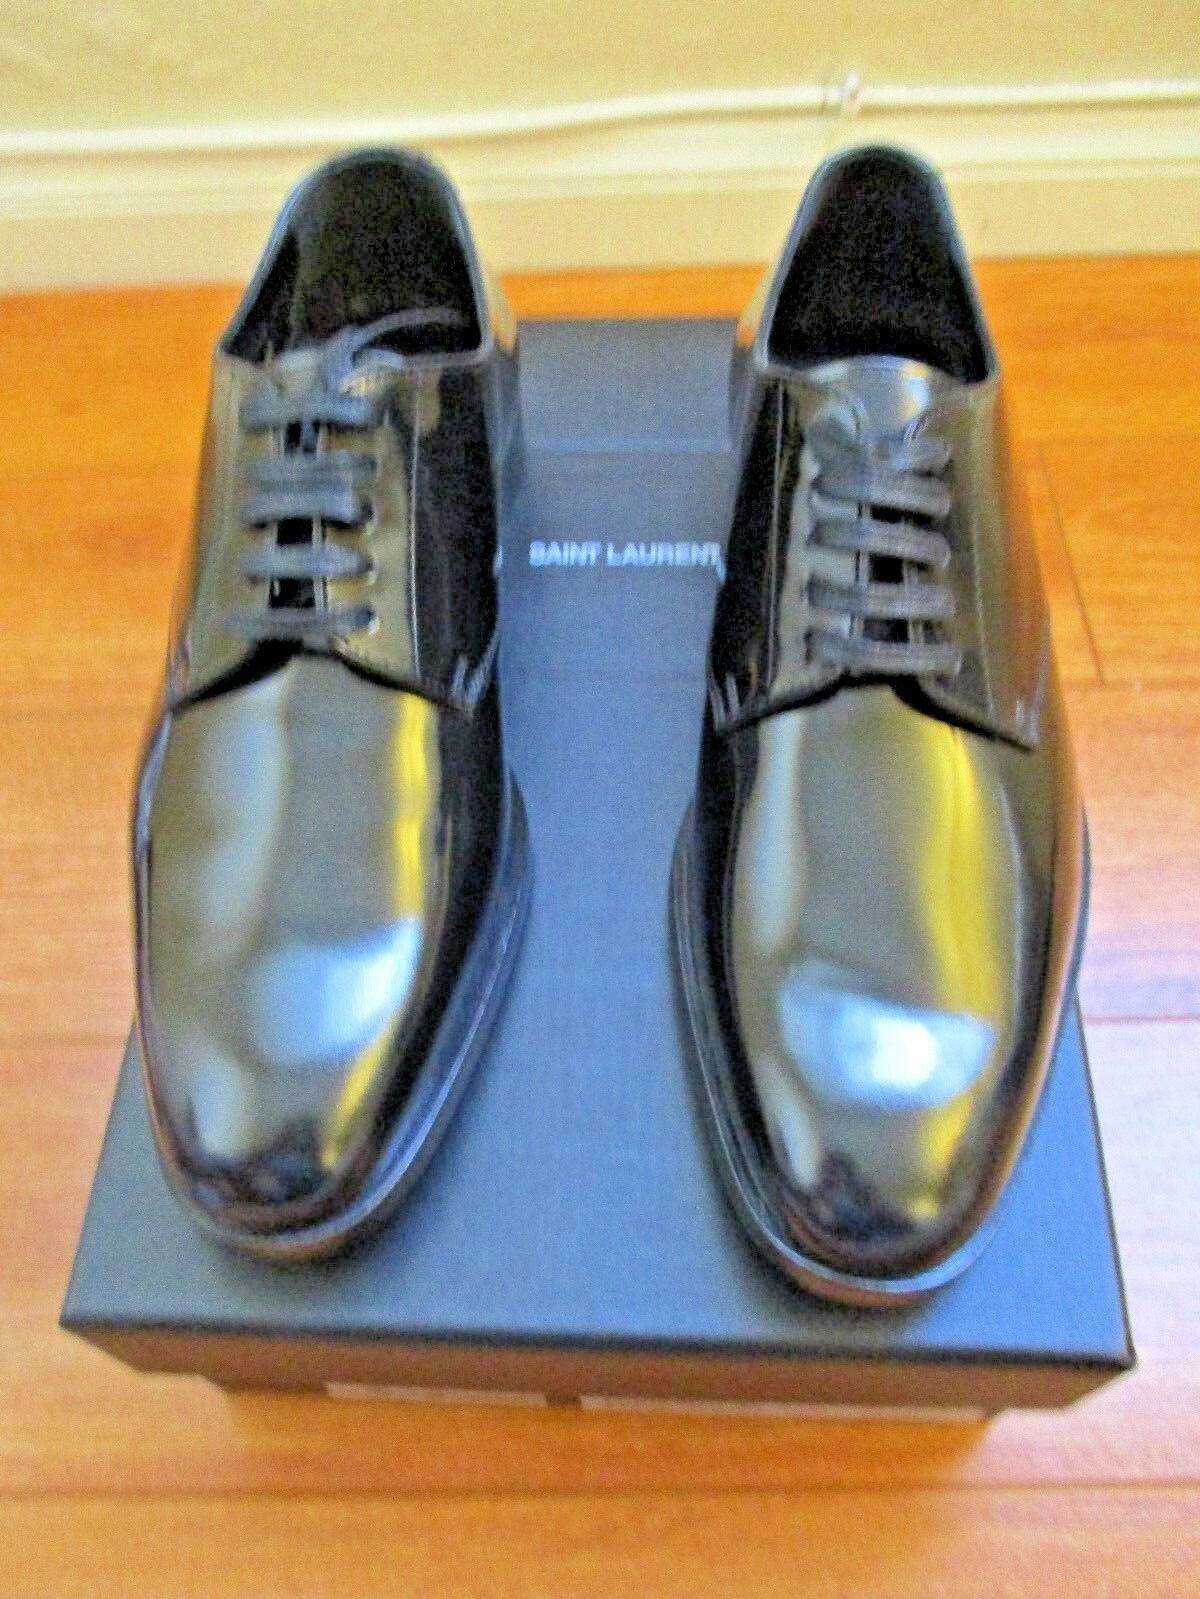 SAINT LAURENT Paris  Patent Leather BALMORALS OXFORD Shoes EU-37.5 US-7.5